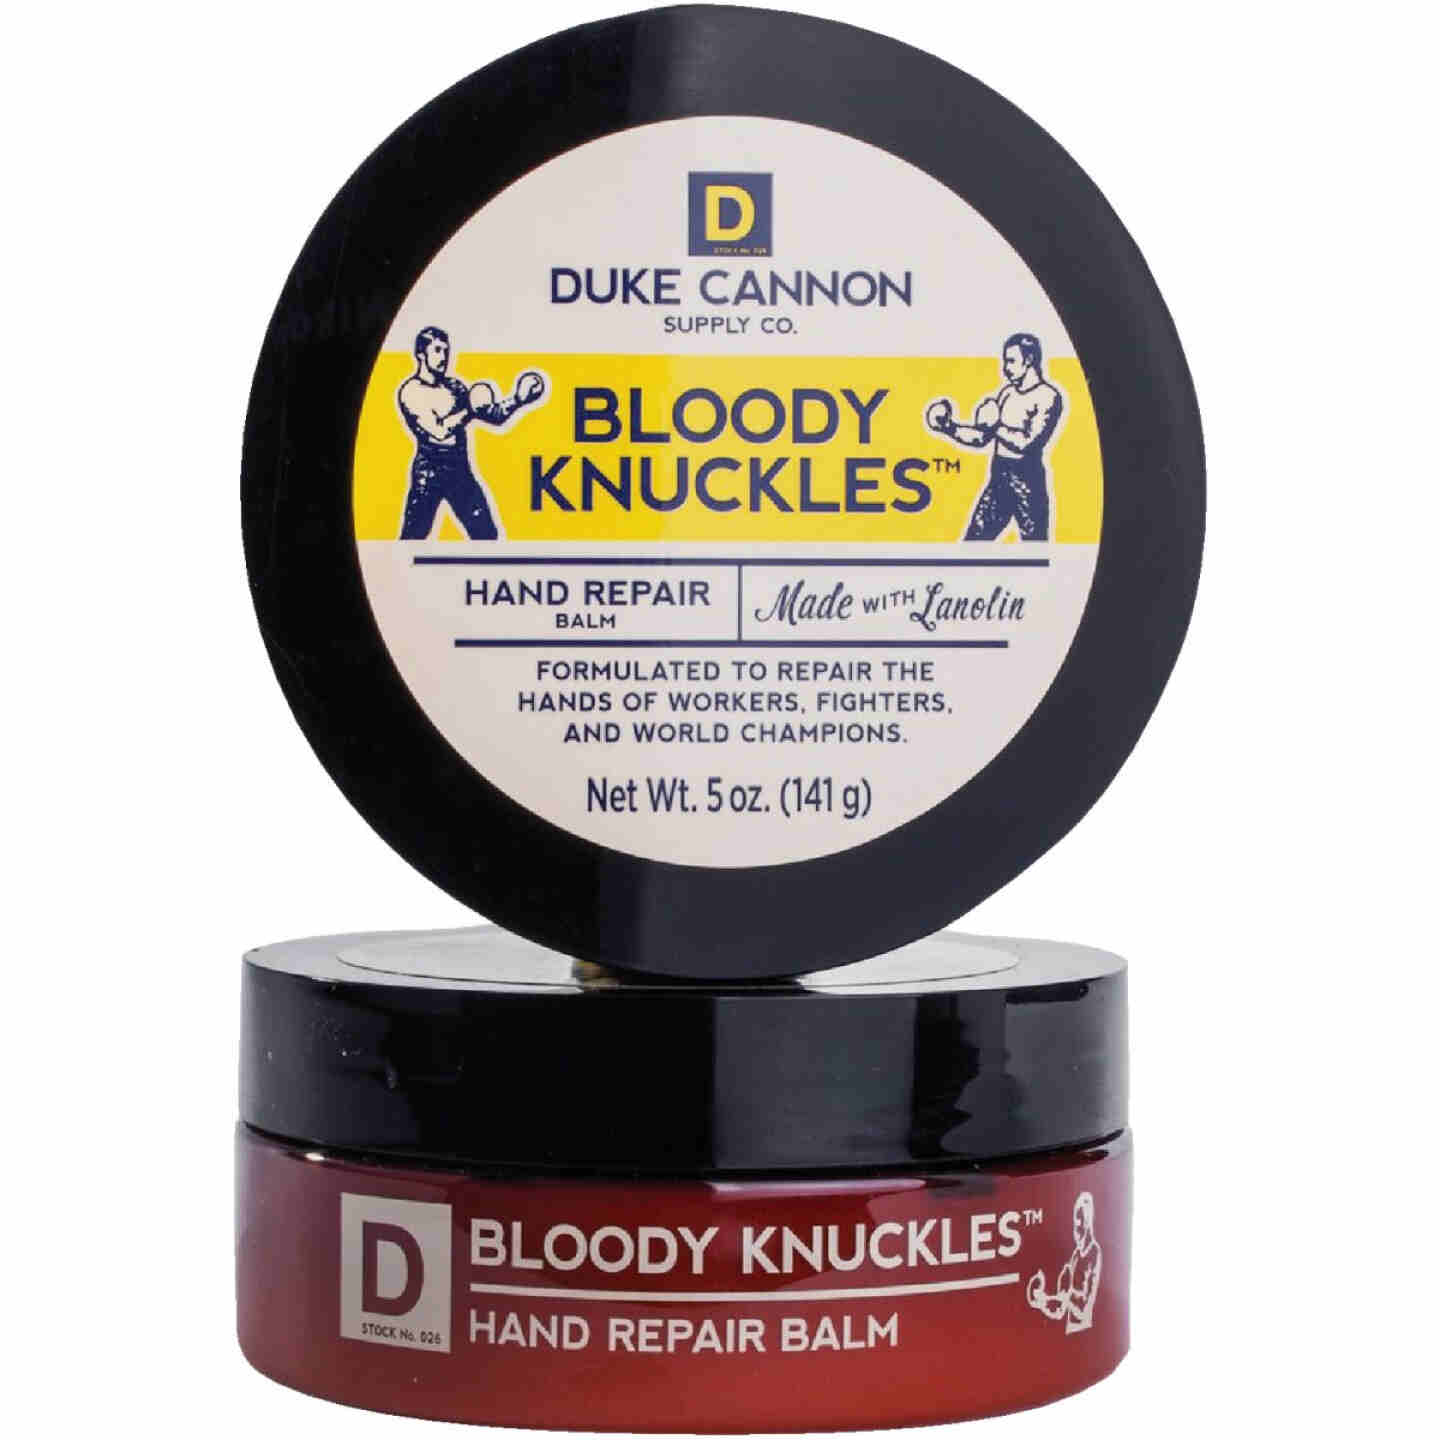 Duke Cannon Bloody Knuckles 5 Oz. Hand Repair Balm Image 1